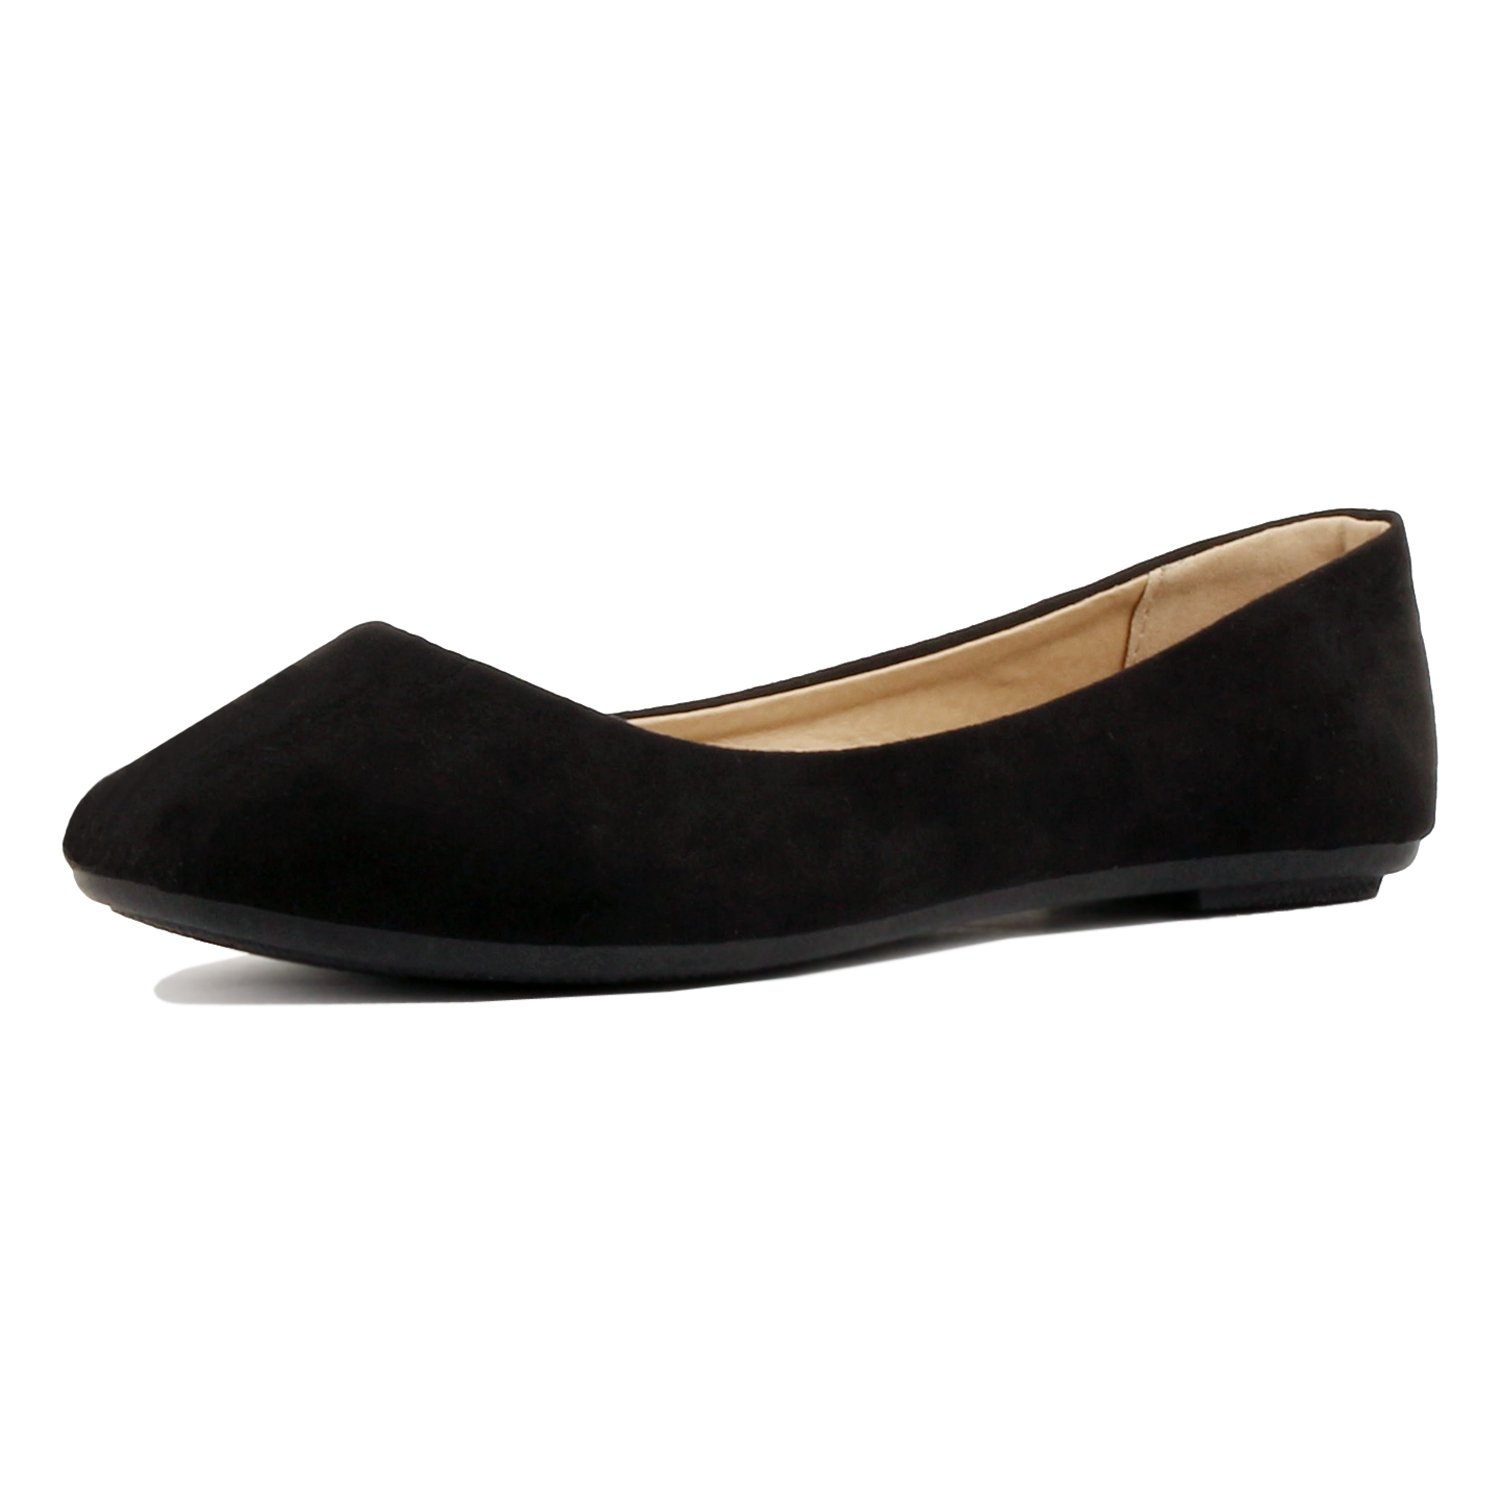 Womens Pointy Toe Slip On Classic Ballet Flat Flats-Shoes, 01 Black Suede, 9